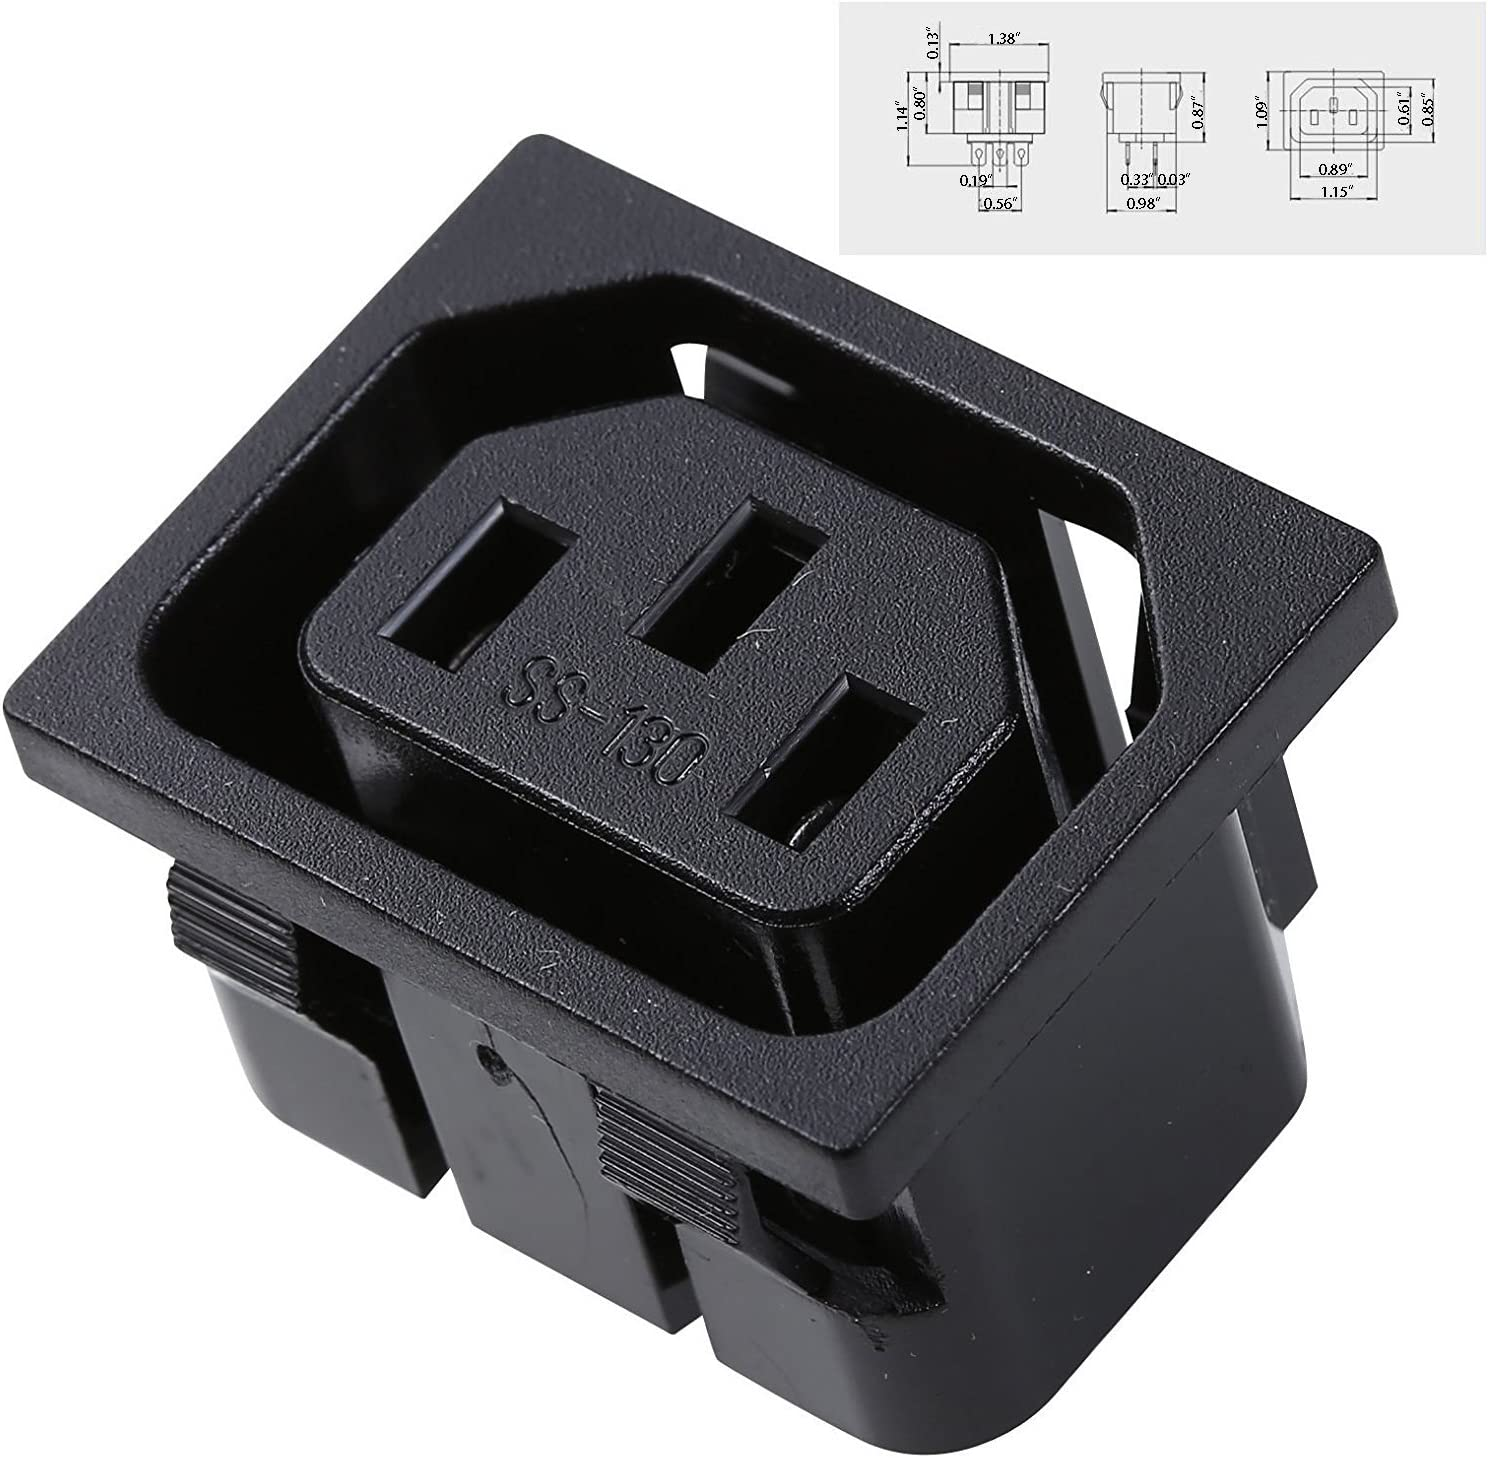 Universal Female Iec320 C13 Letter Base Connector Adapter Plug (pack Of 2) Home Audio & Theater